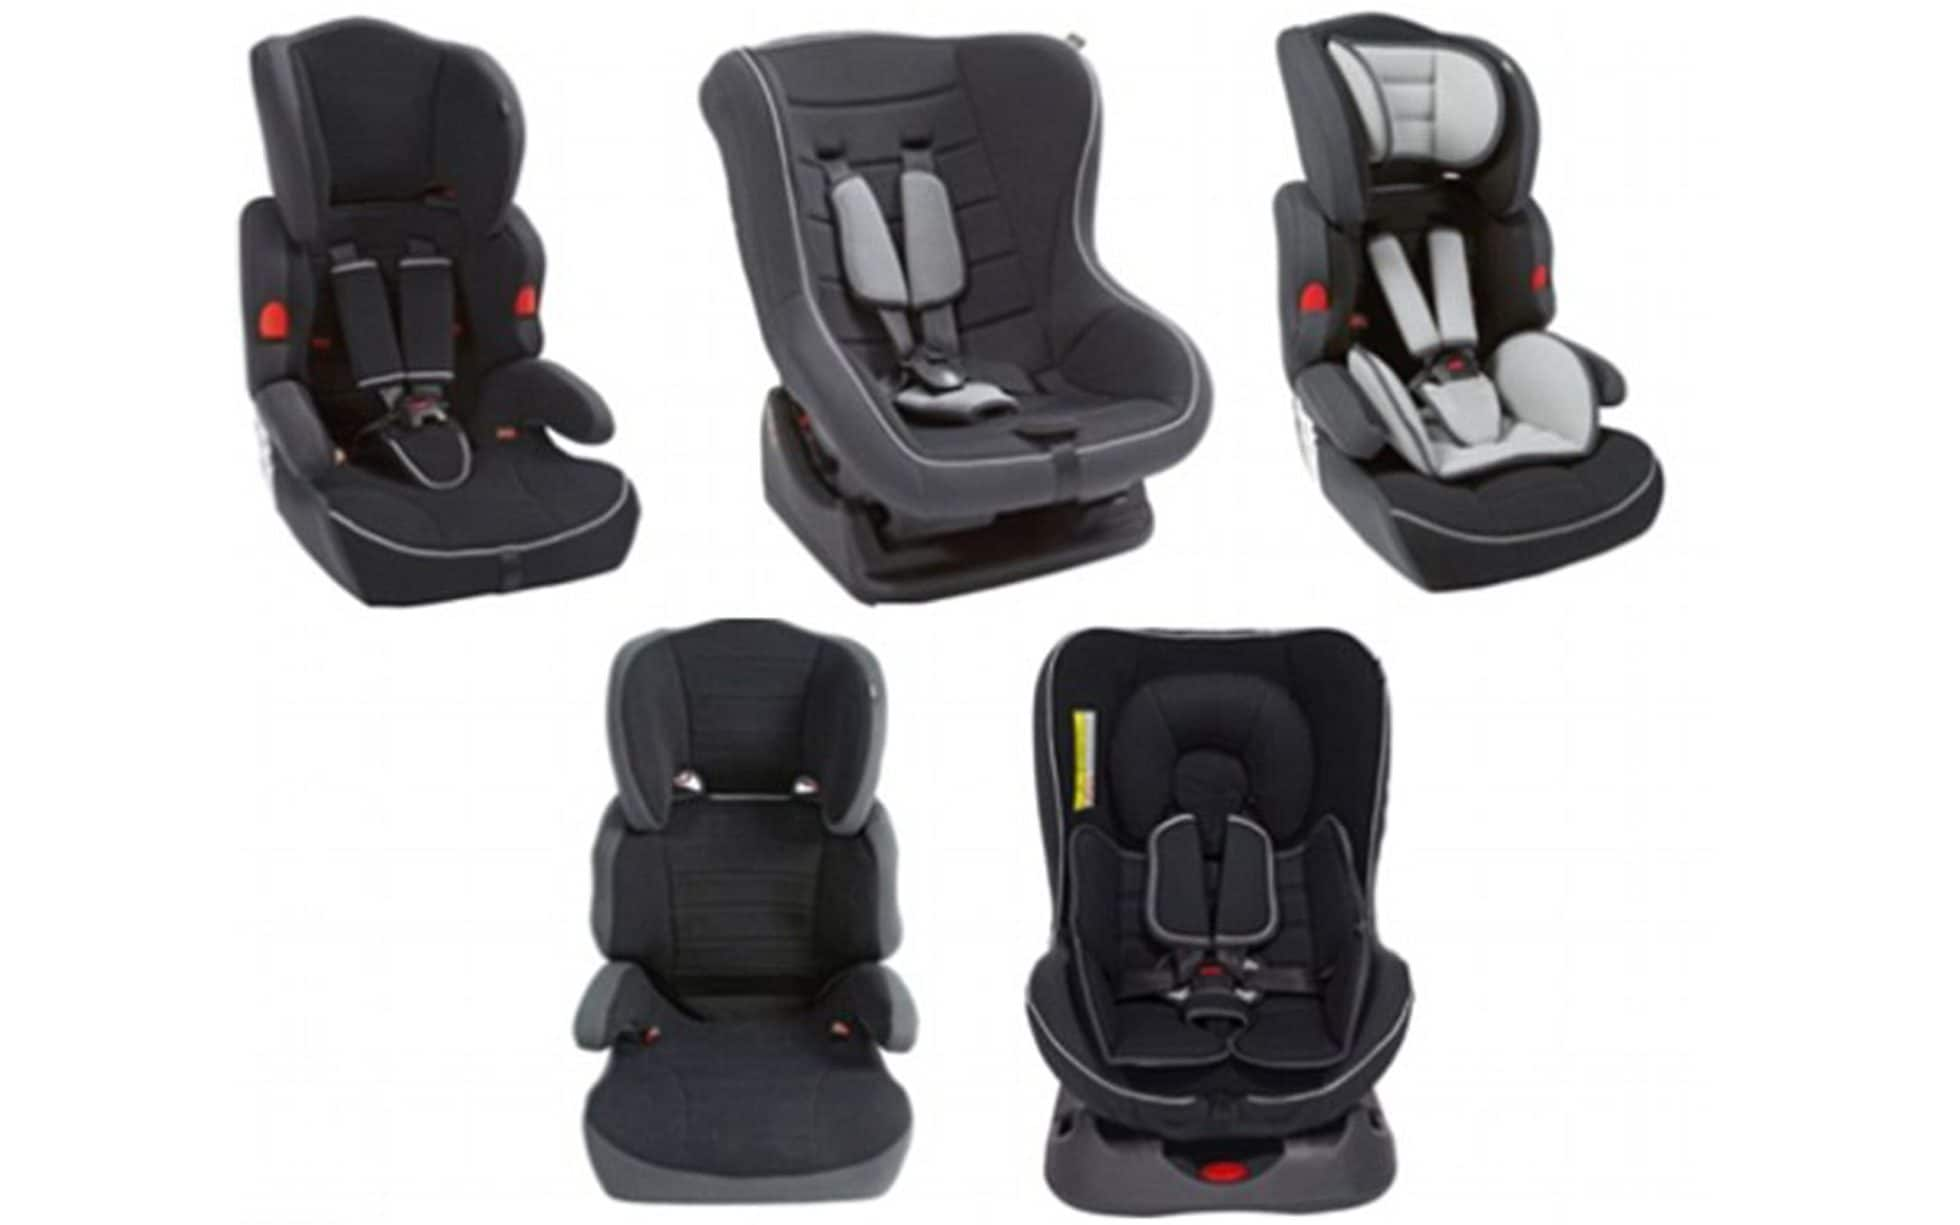 argos toddler chair seat swivel meaning mother sues for 20m over unsafe baby car after urgent has issued an recall five seats made by mamas and papas